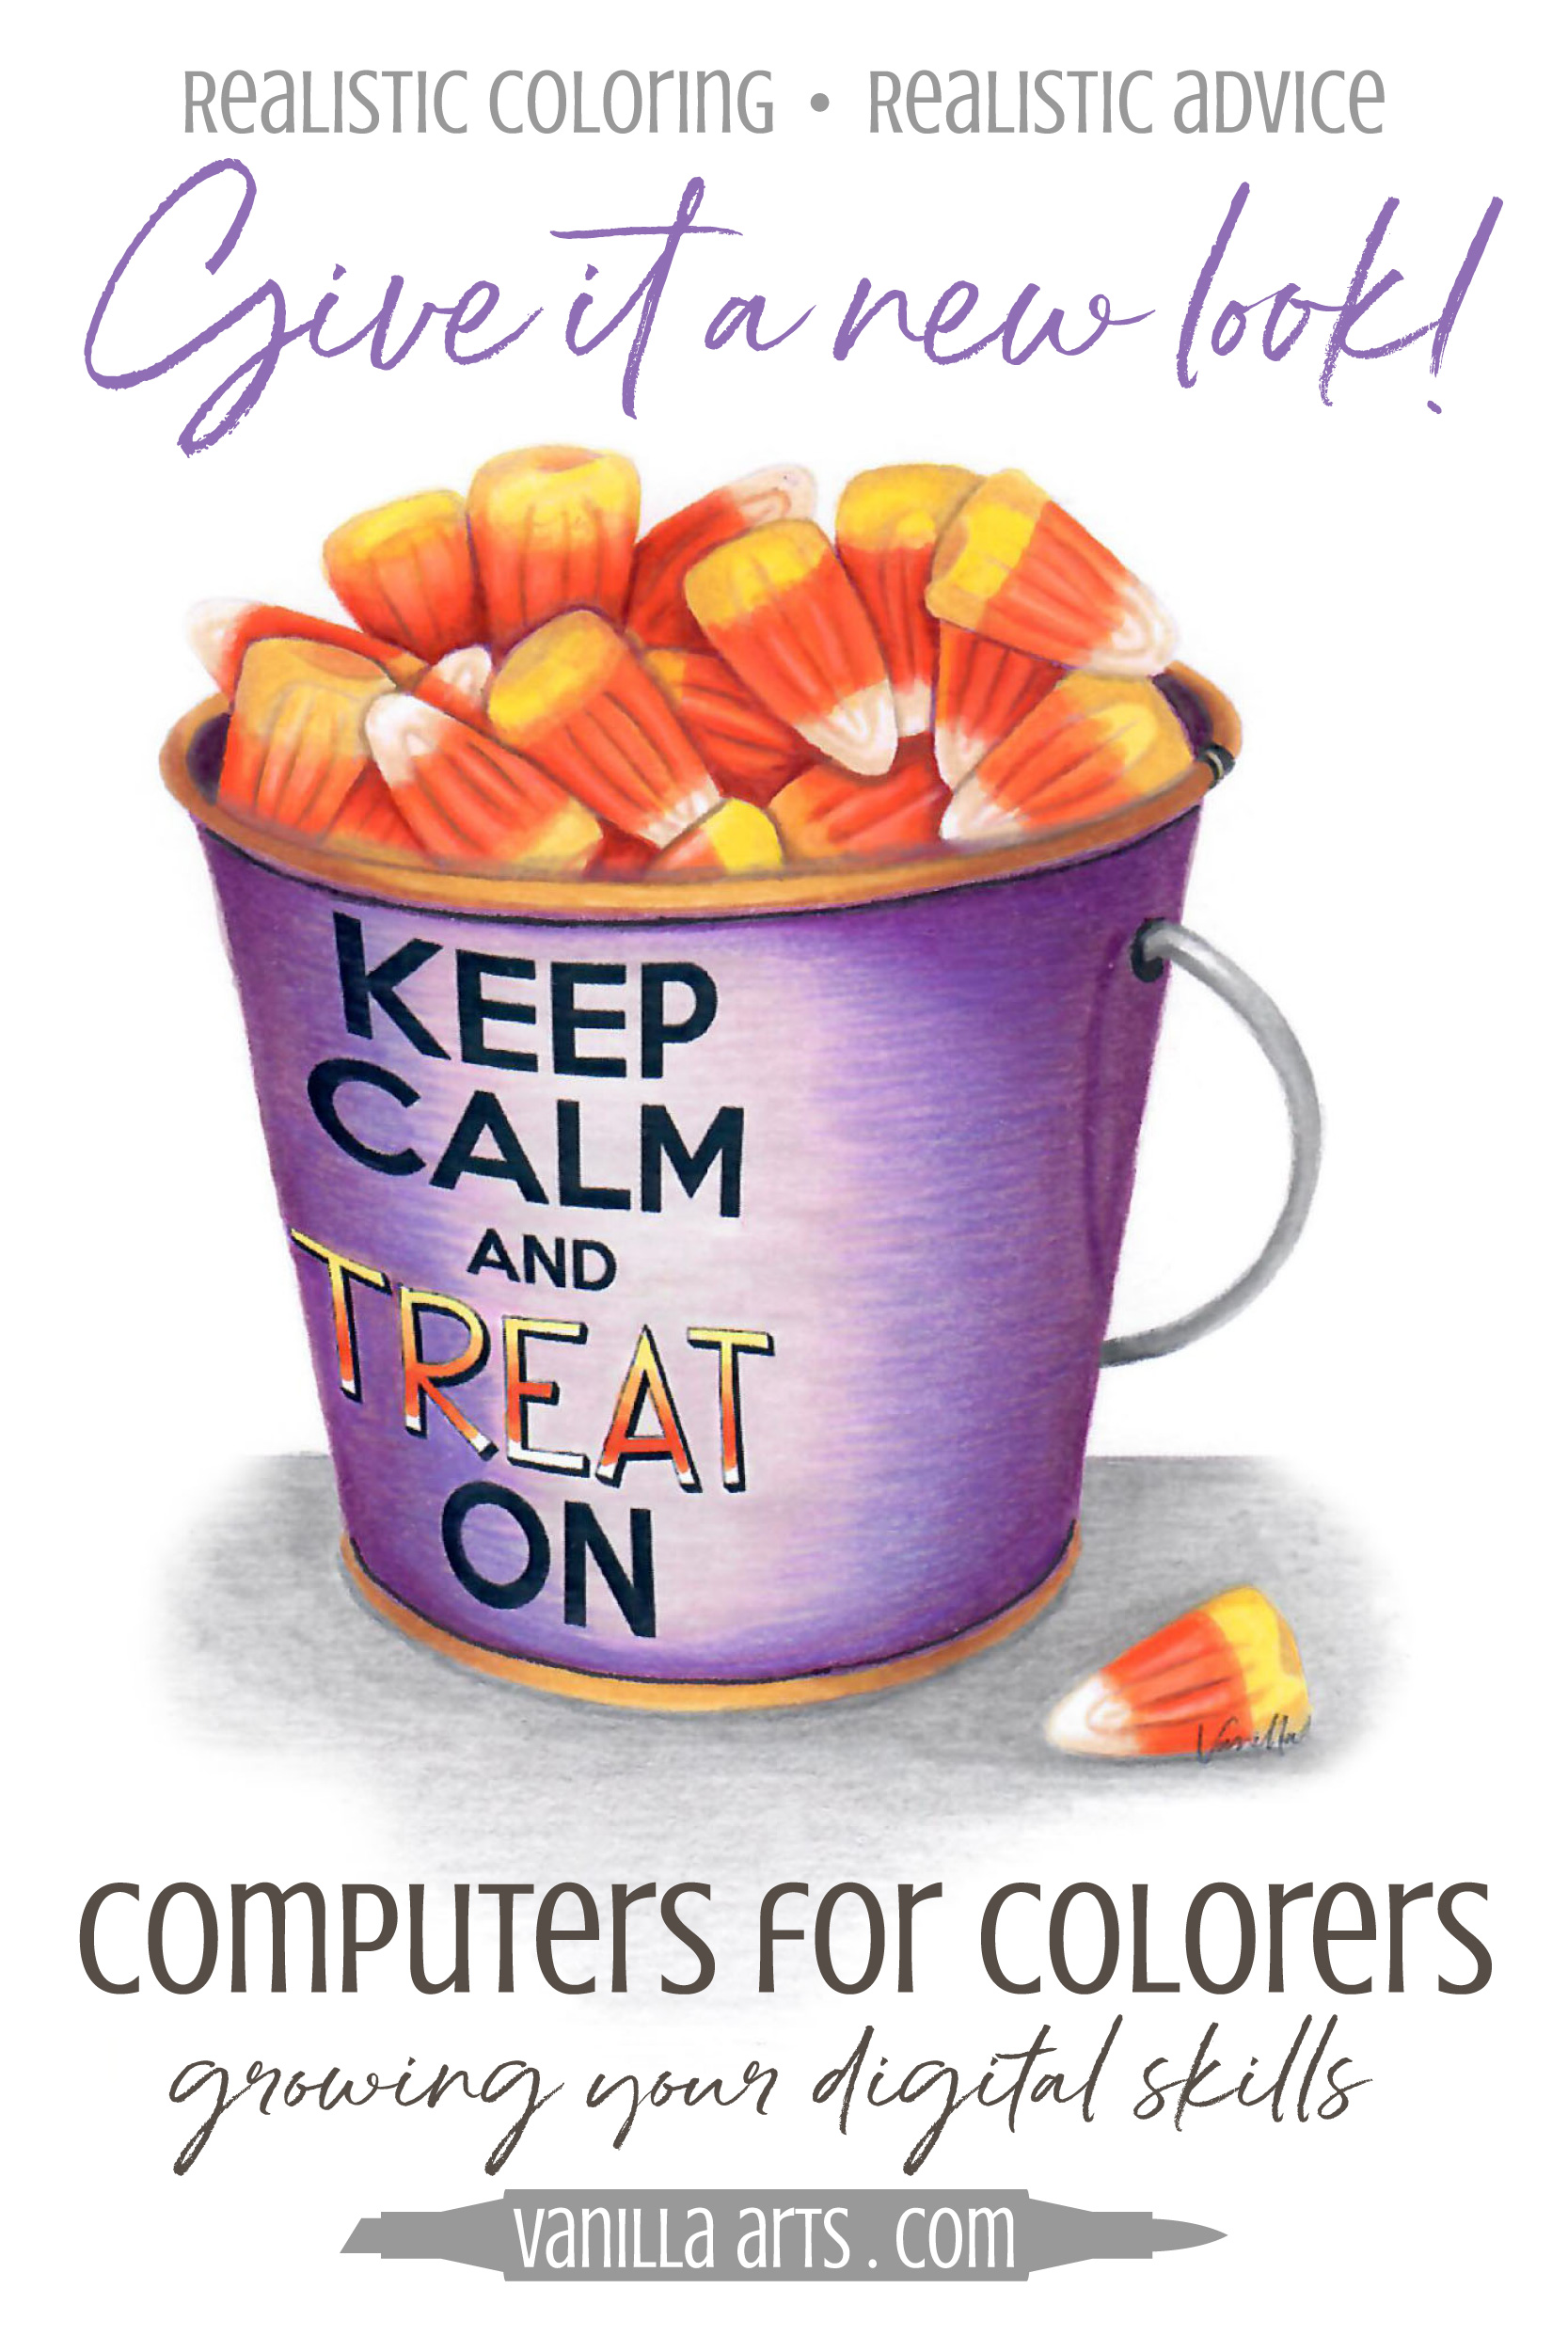 Computers for Colorers. Learn basic digital stamp skills to create the kind of stamps you want to color! Make stamps easier for use with Copic Marker, colored pencil, or watercolor with our resident digi stamp expert, Kathy. | VanillaArts.com | #copicmarker #coloredpencil #digitalstamp